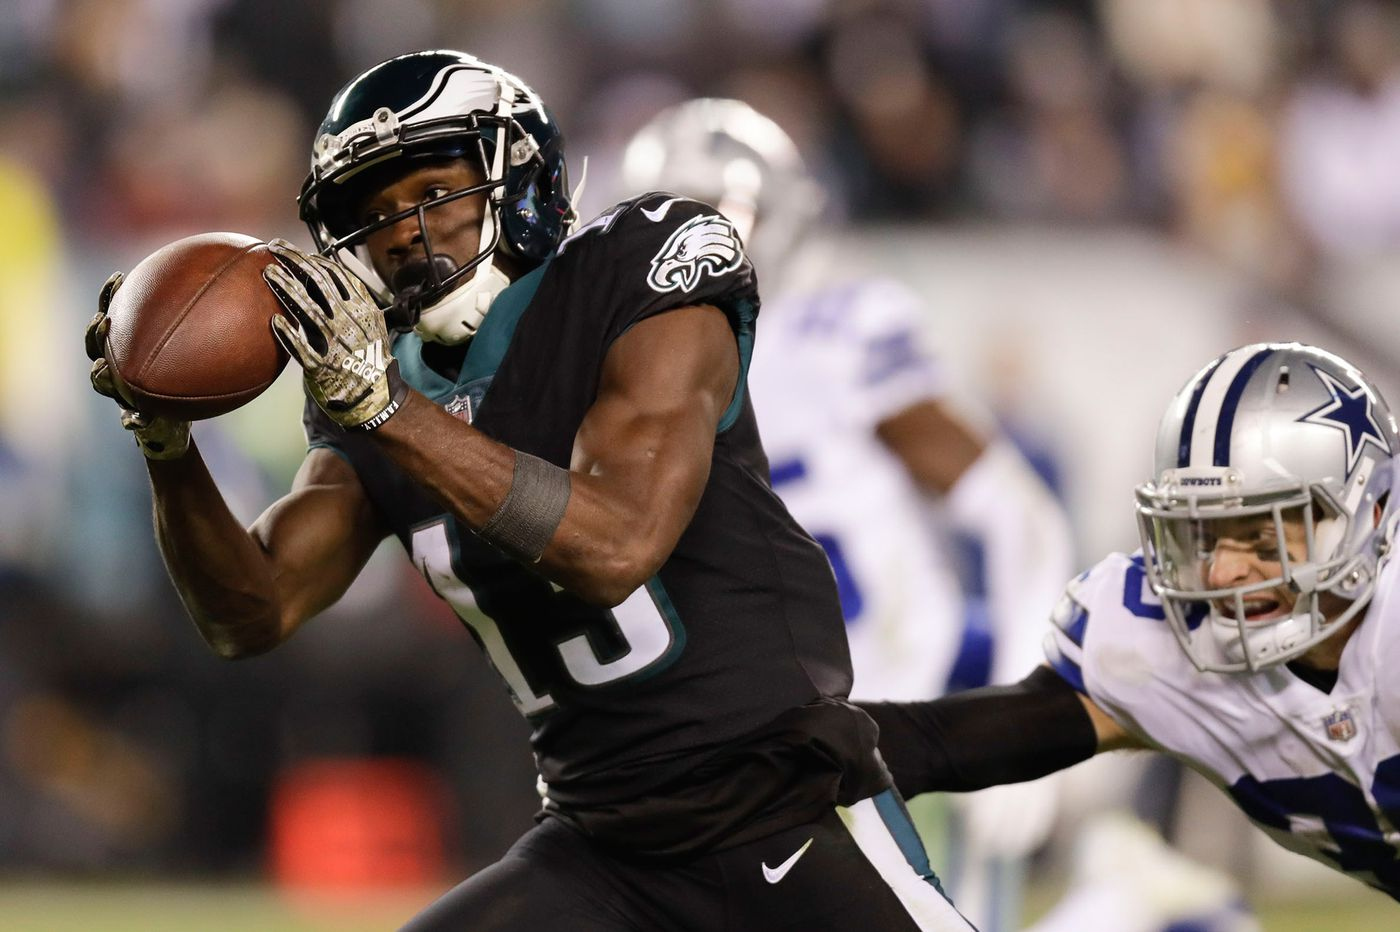 Eagles say they can't worry about hole they've dug, must focus on first step out - beating Washington